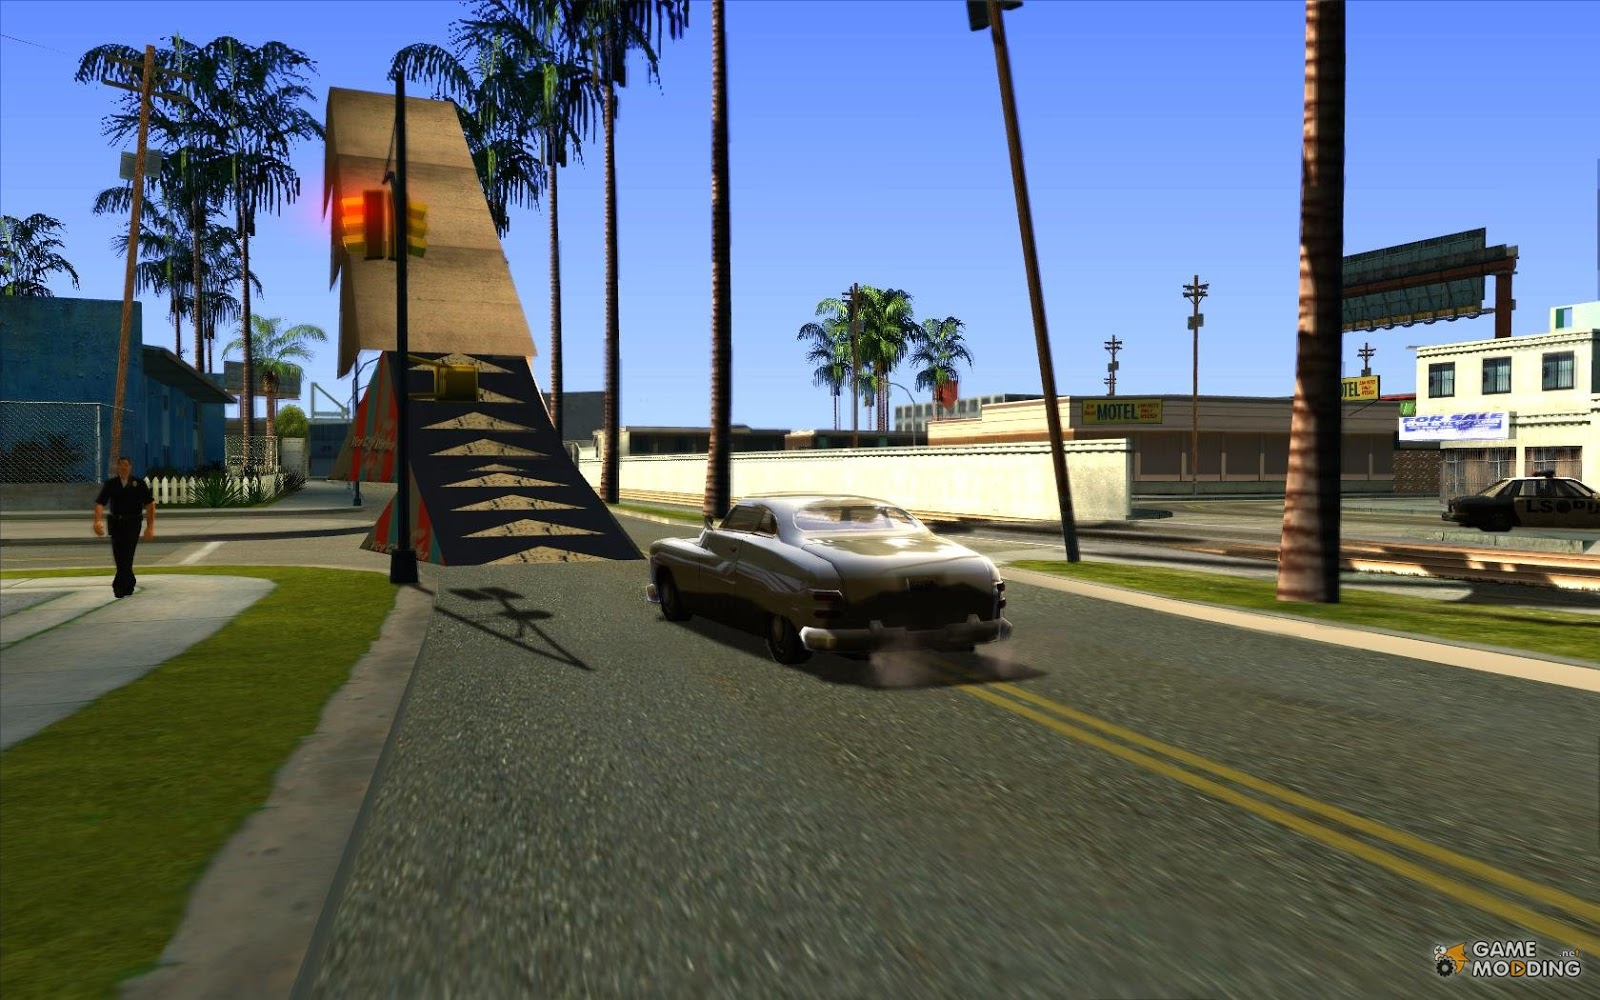 Gta sa full game cleo no root apk download | CLEO Gold APK